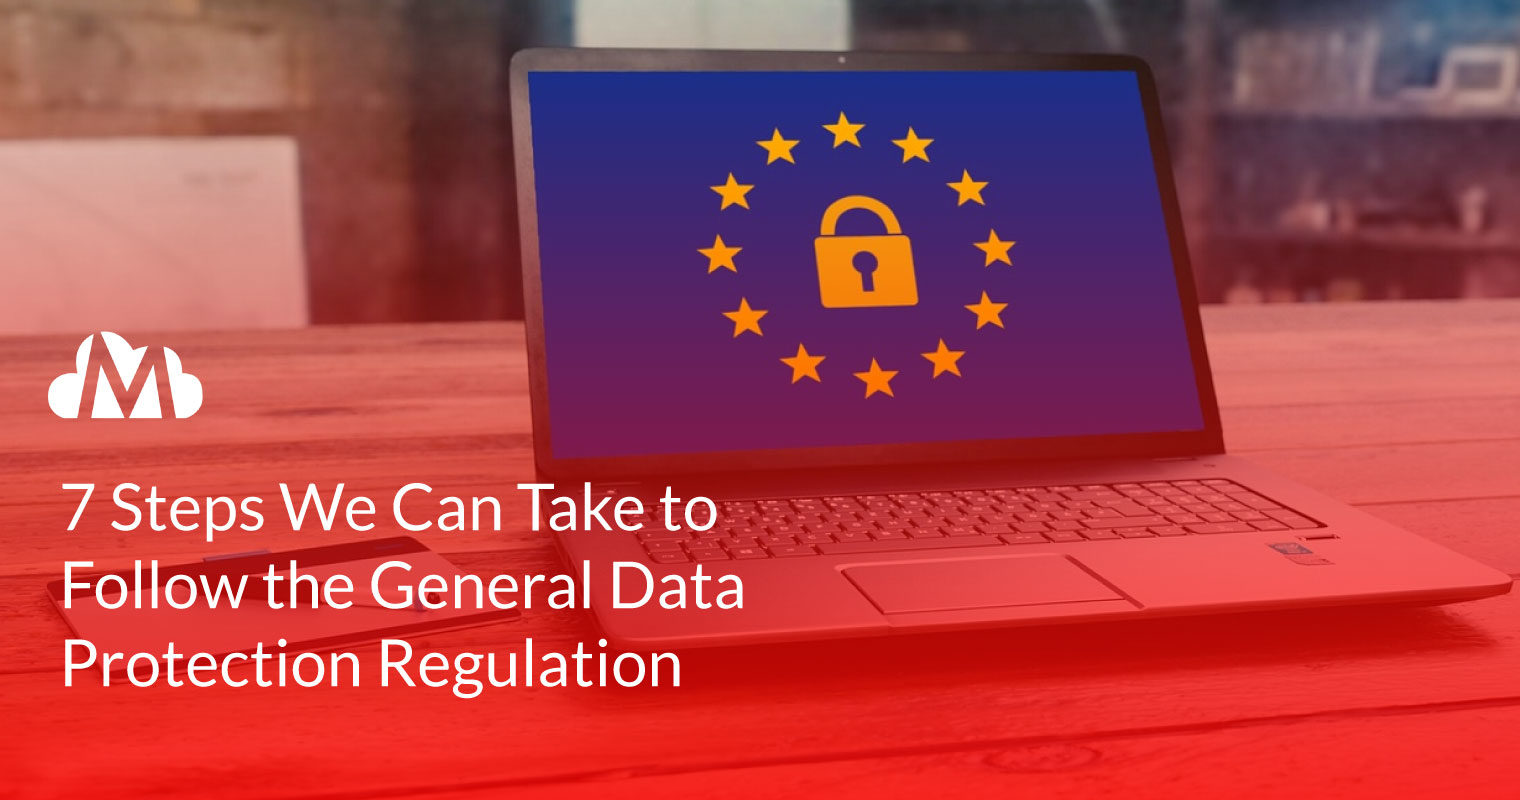 7 Steps We Can Take to Follow the General Data Protection Regulation